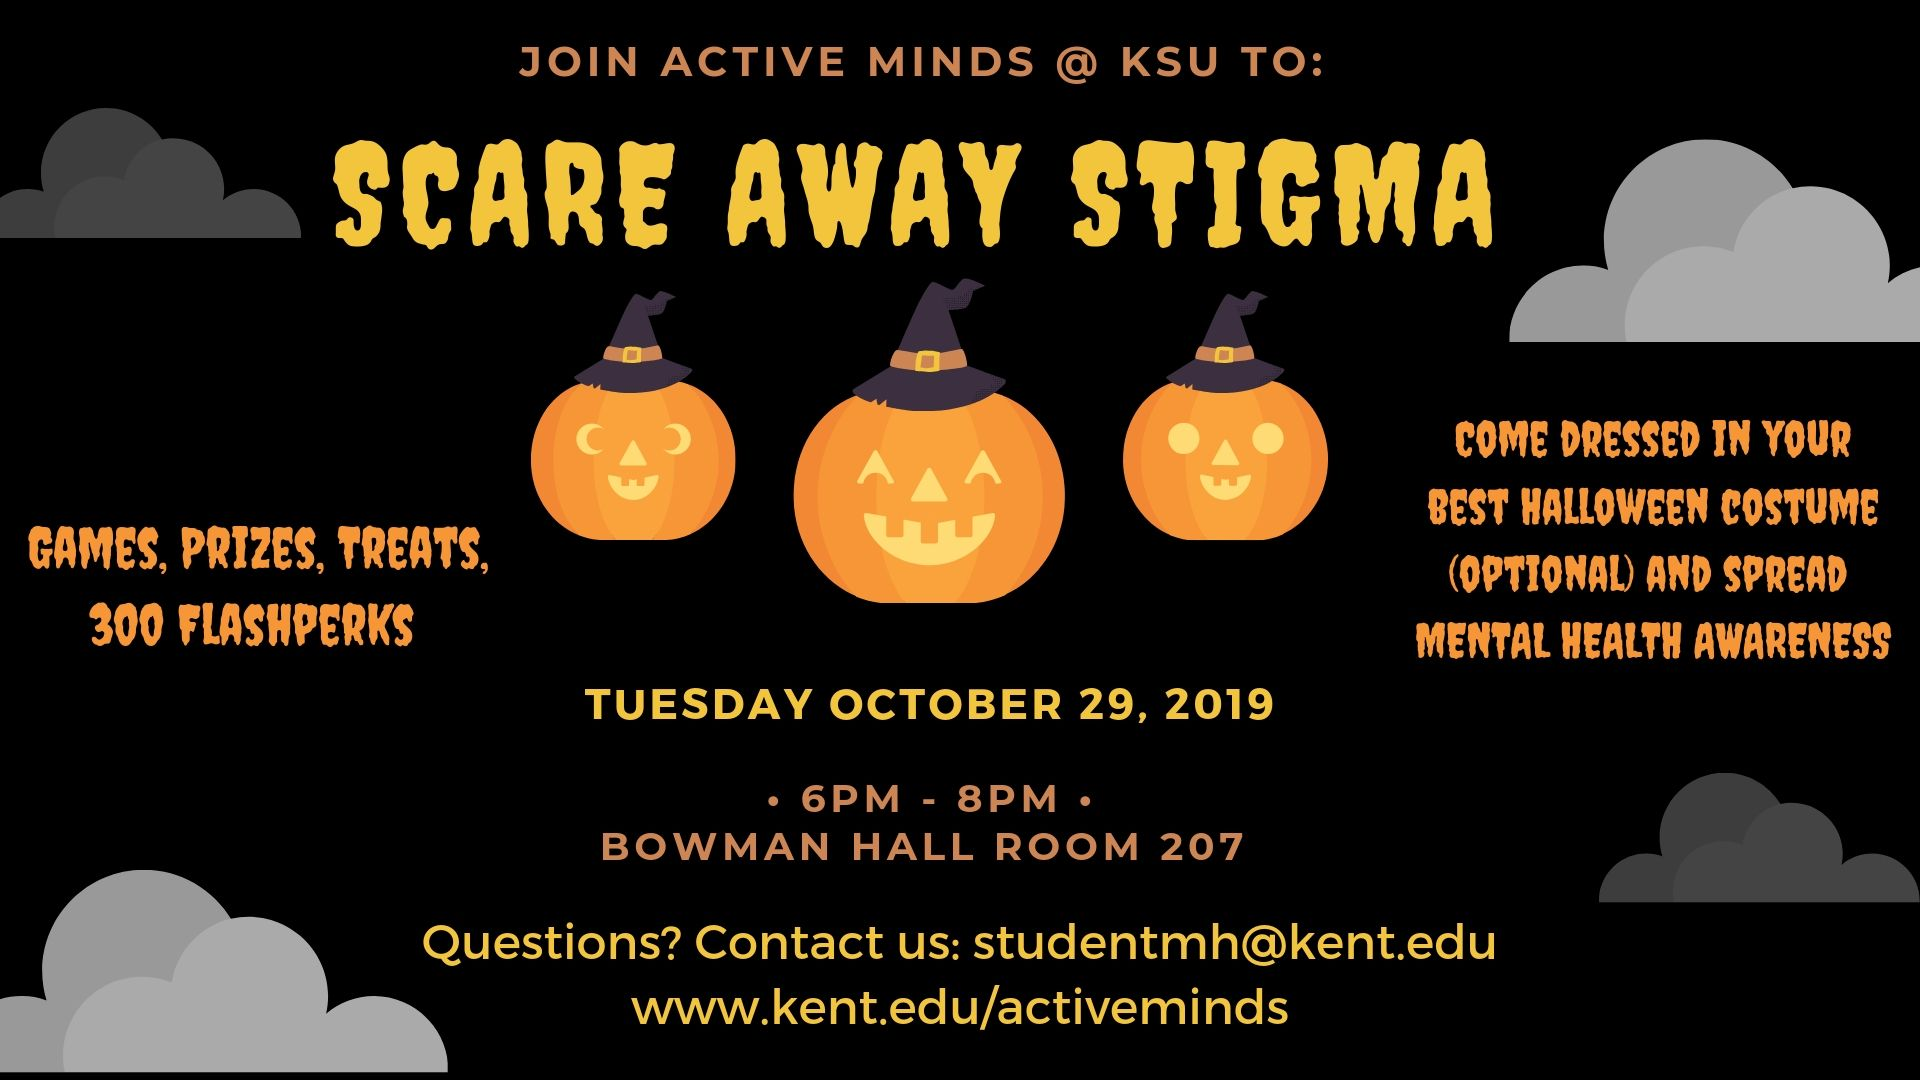 Flyer for Scare Away Stigma event